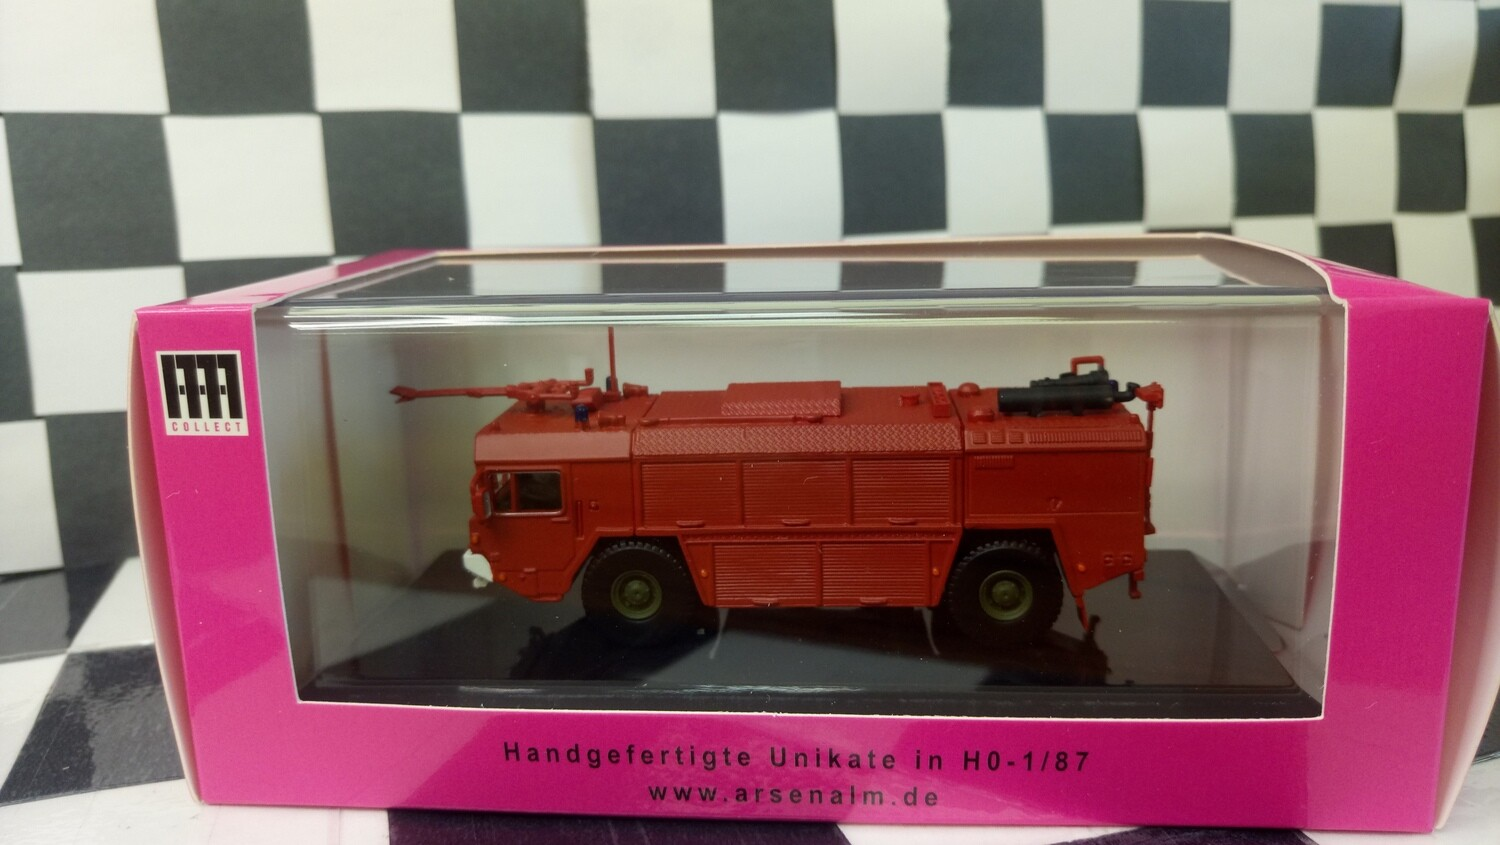 1:87 Arsenal-M FAUN TroLF 3000 (Red version)